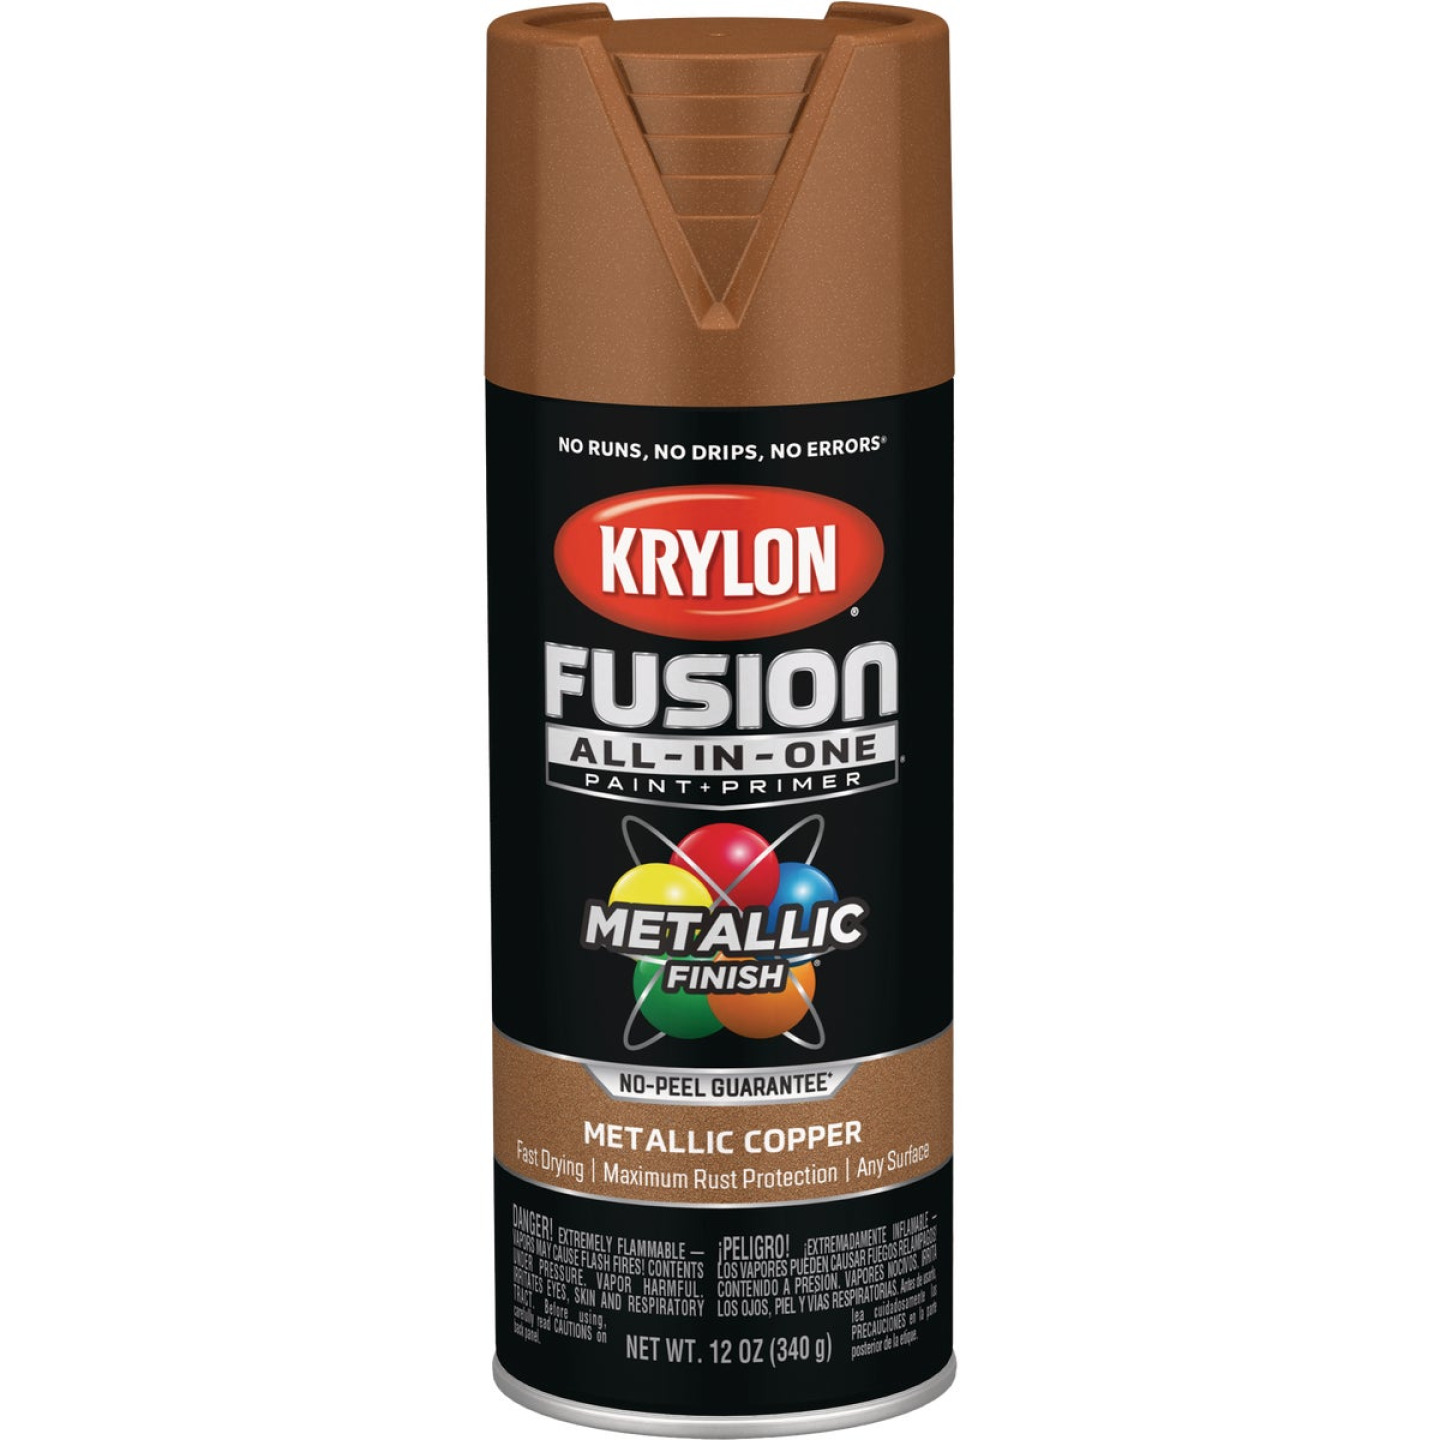 Krylon Fusion All-In-One Metallic Spray Paint & Primer, Copper Image 1